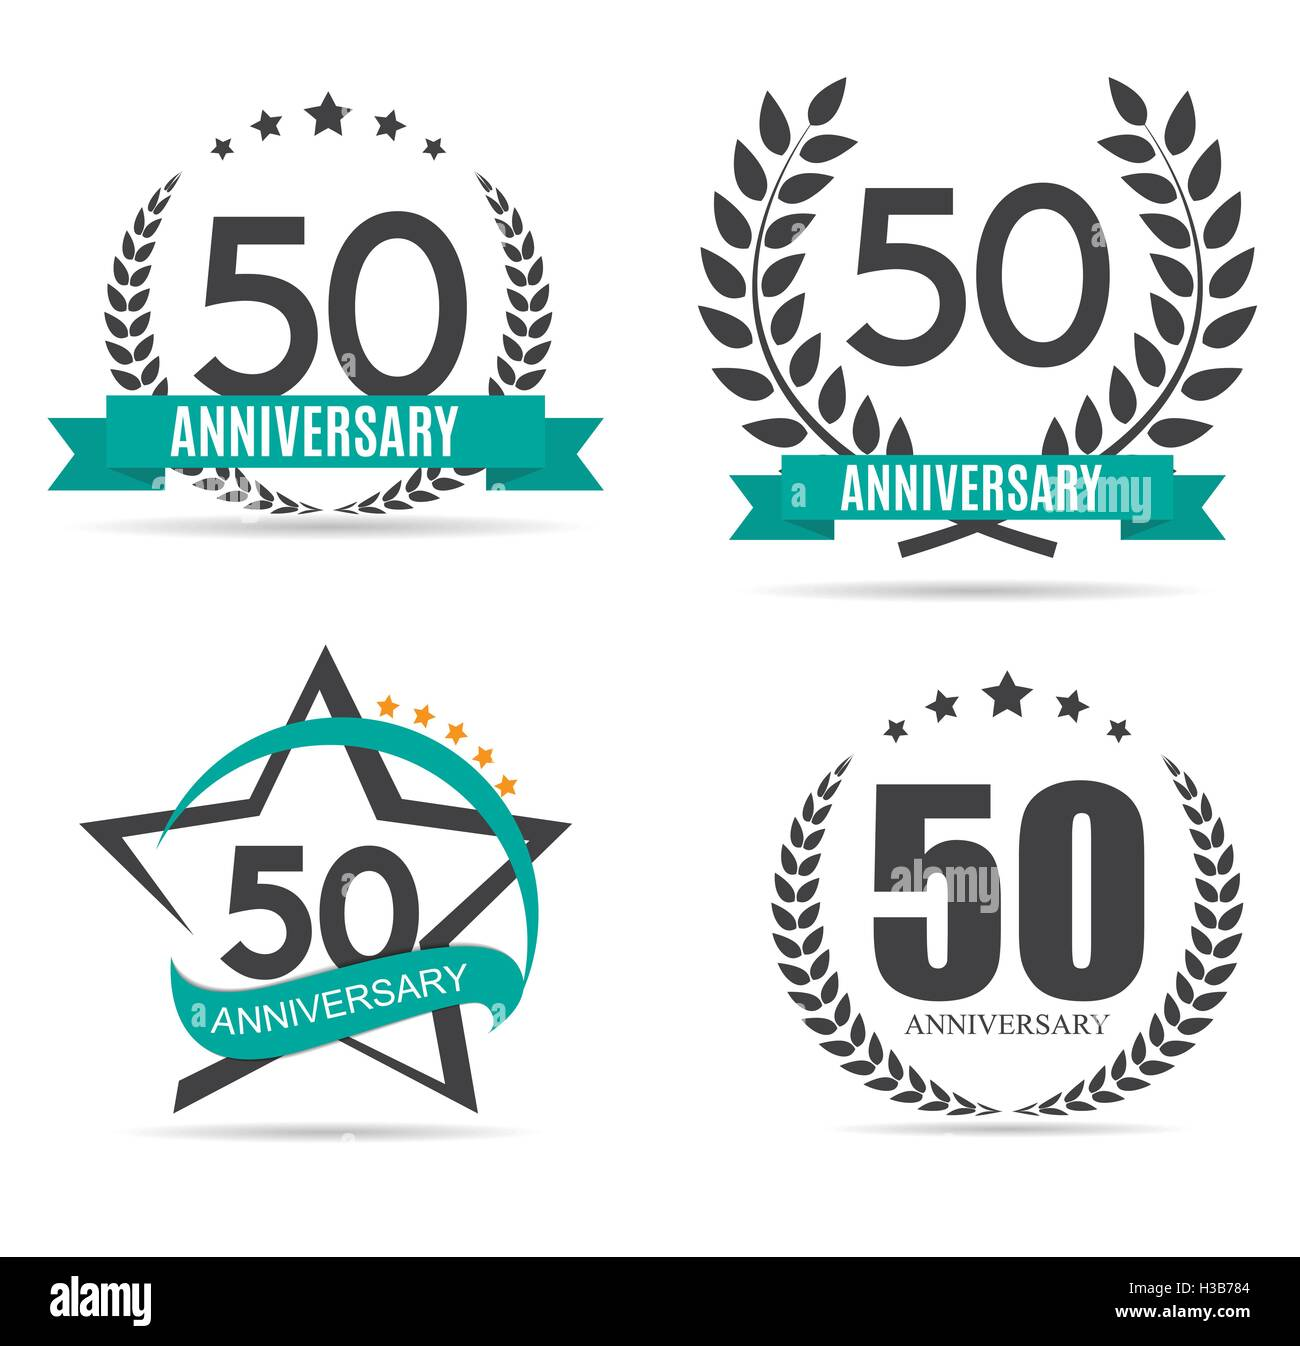 Template logo 50 years anniversary vector illustration stock template logo 50 years anniversary vector illustration buycottarizona Choice Image